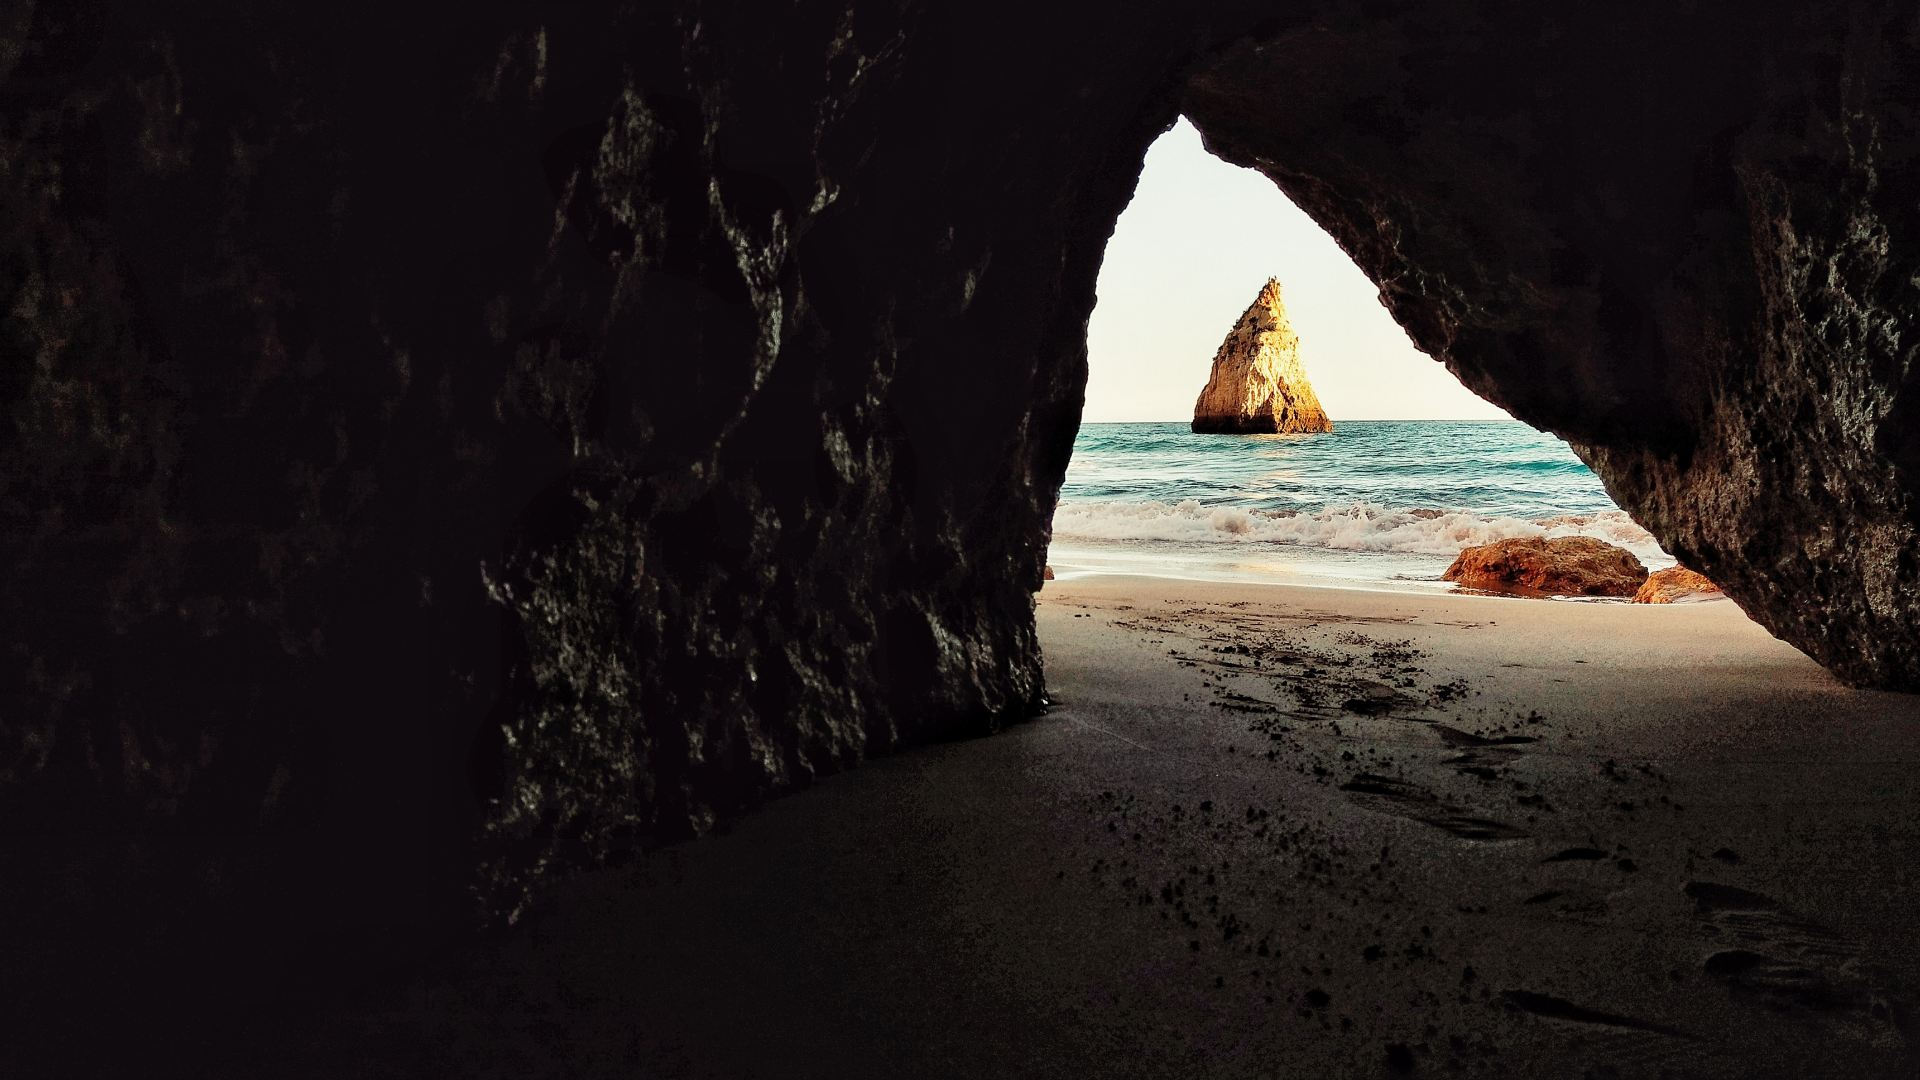 hidden cove in one of the best secret beaches on the Algarve